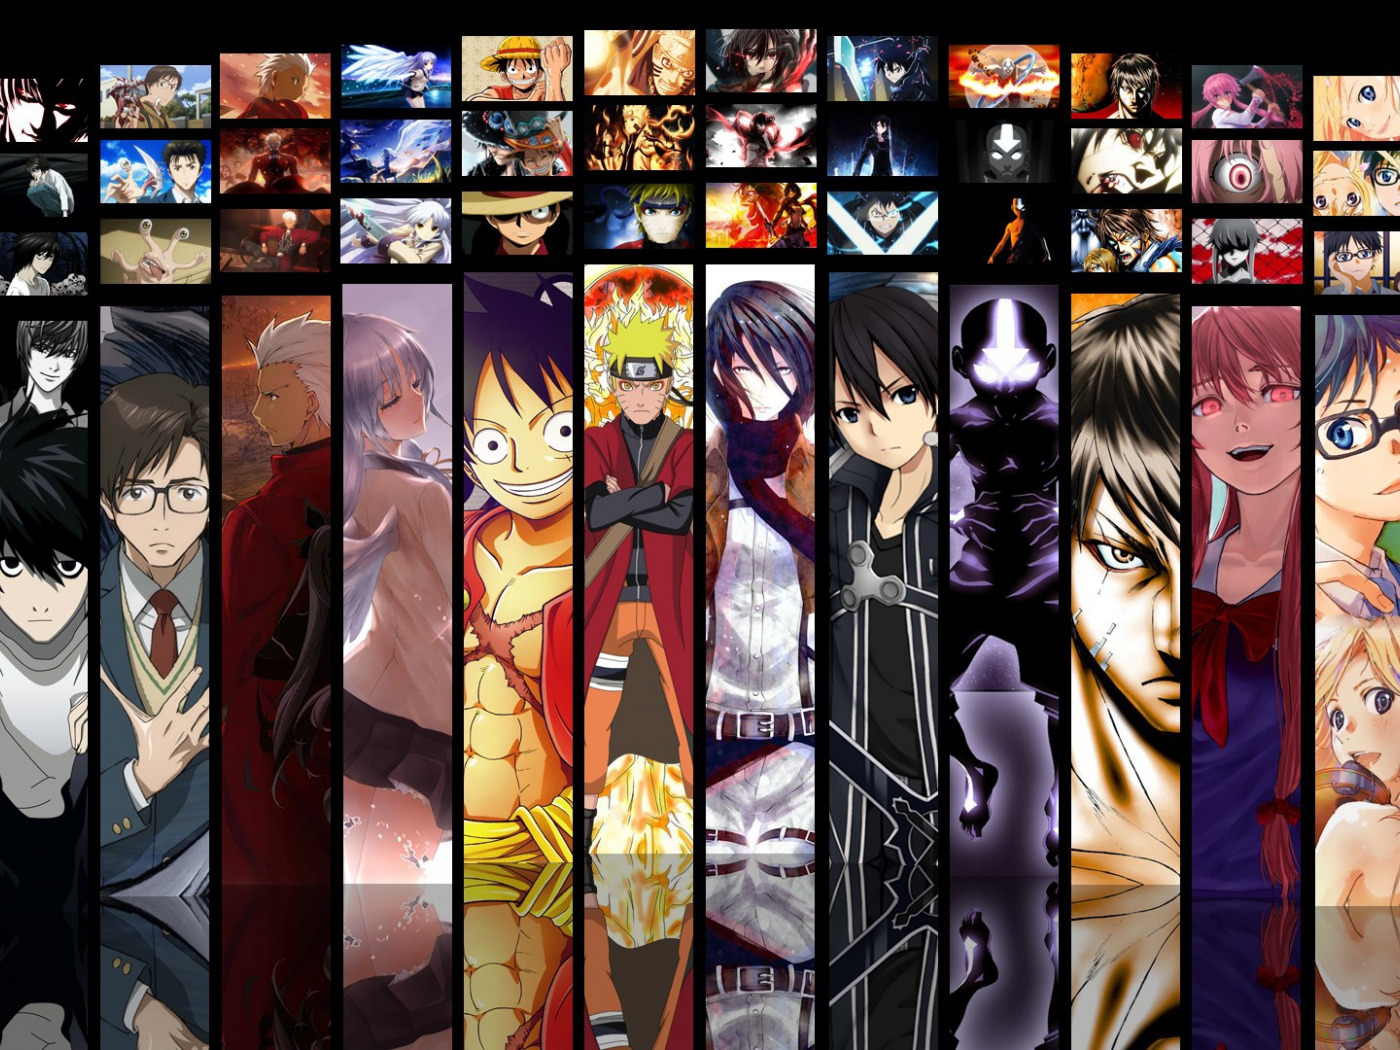 Download wallpaper game, Death Note, Naruto, Anime, Fate